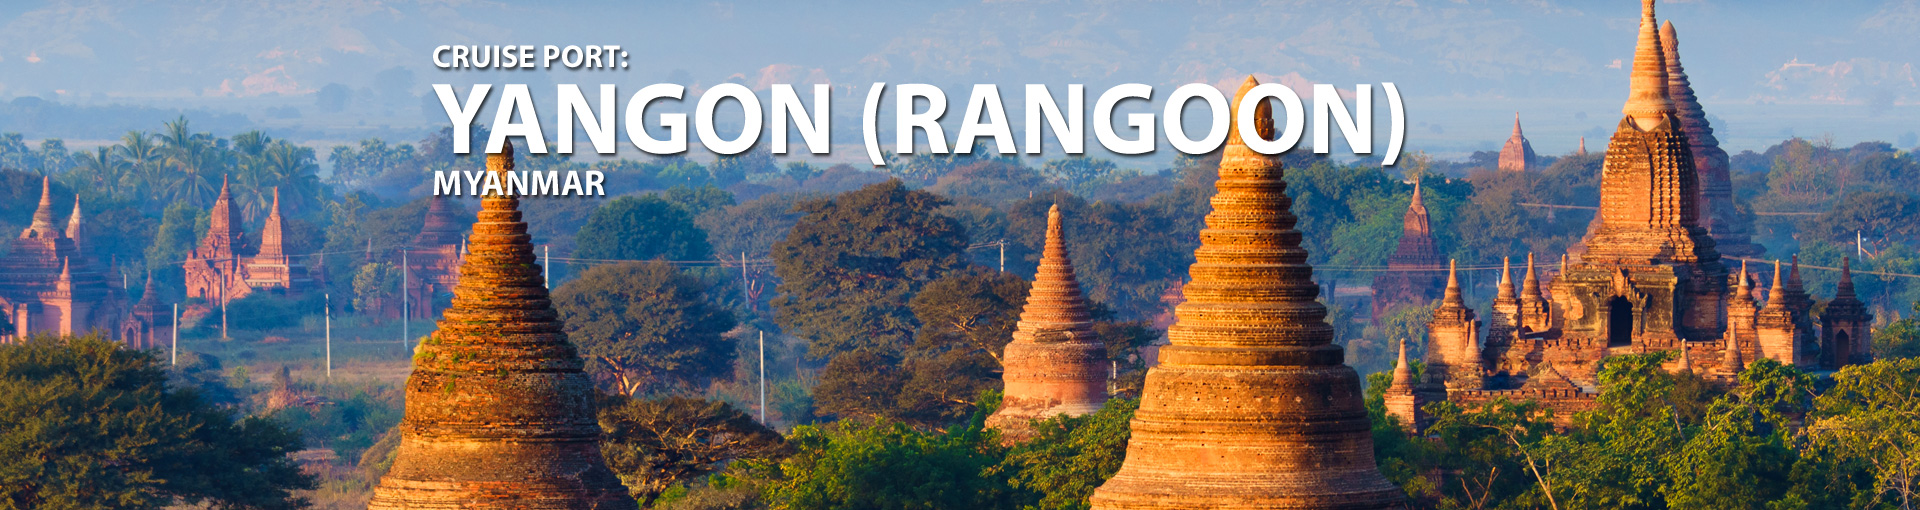 Cruise Port: Yangon (Rangoon), Myanmar